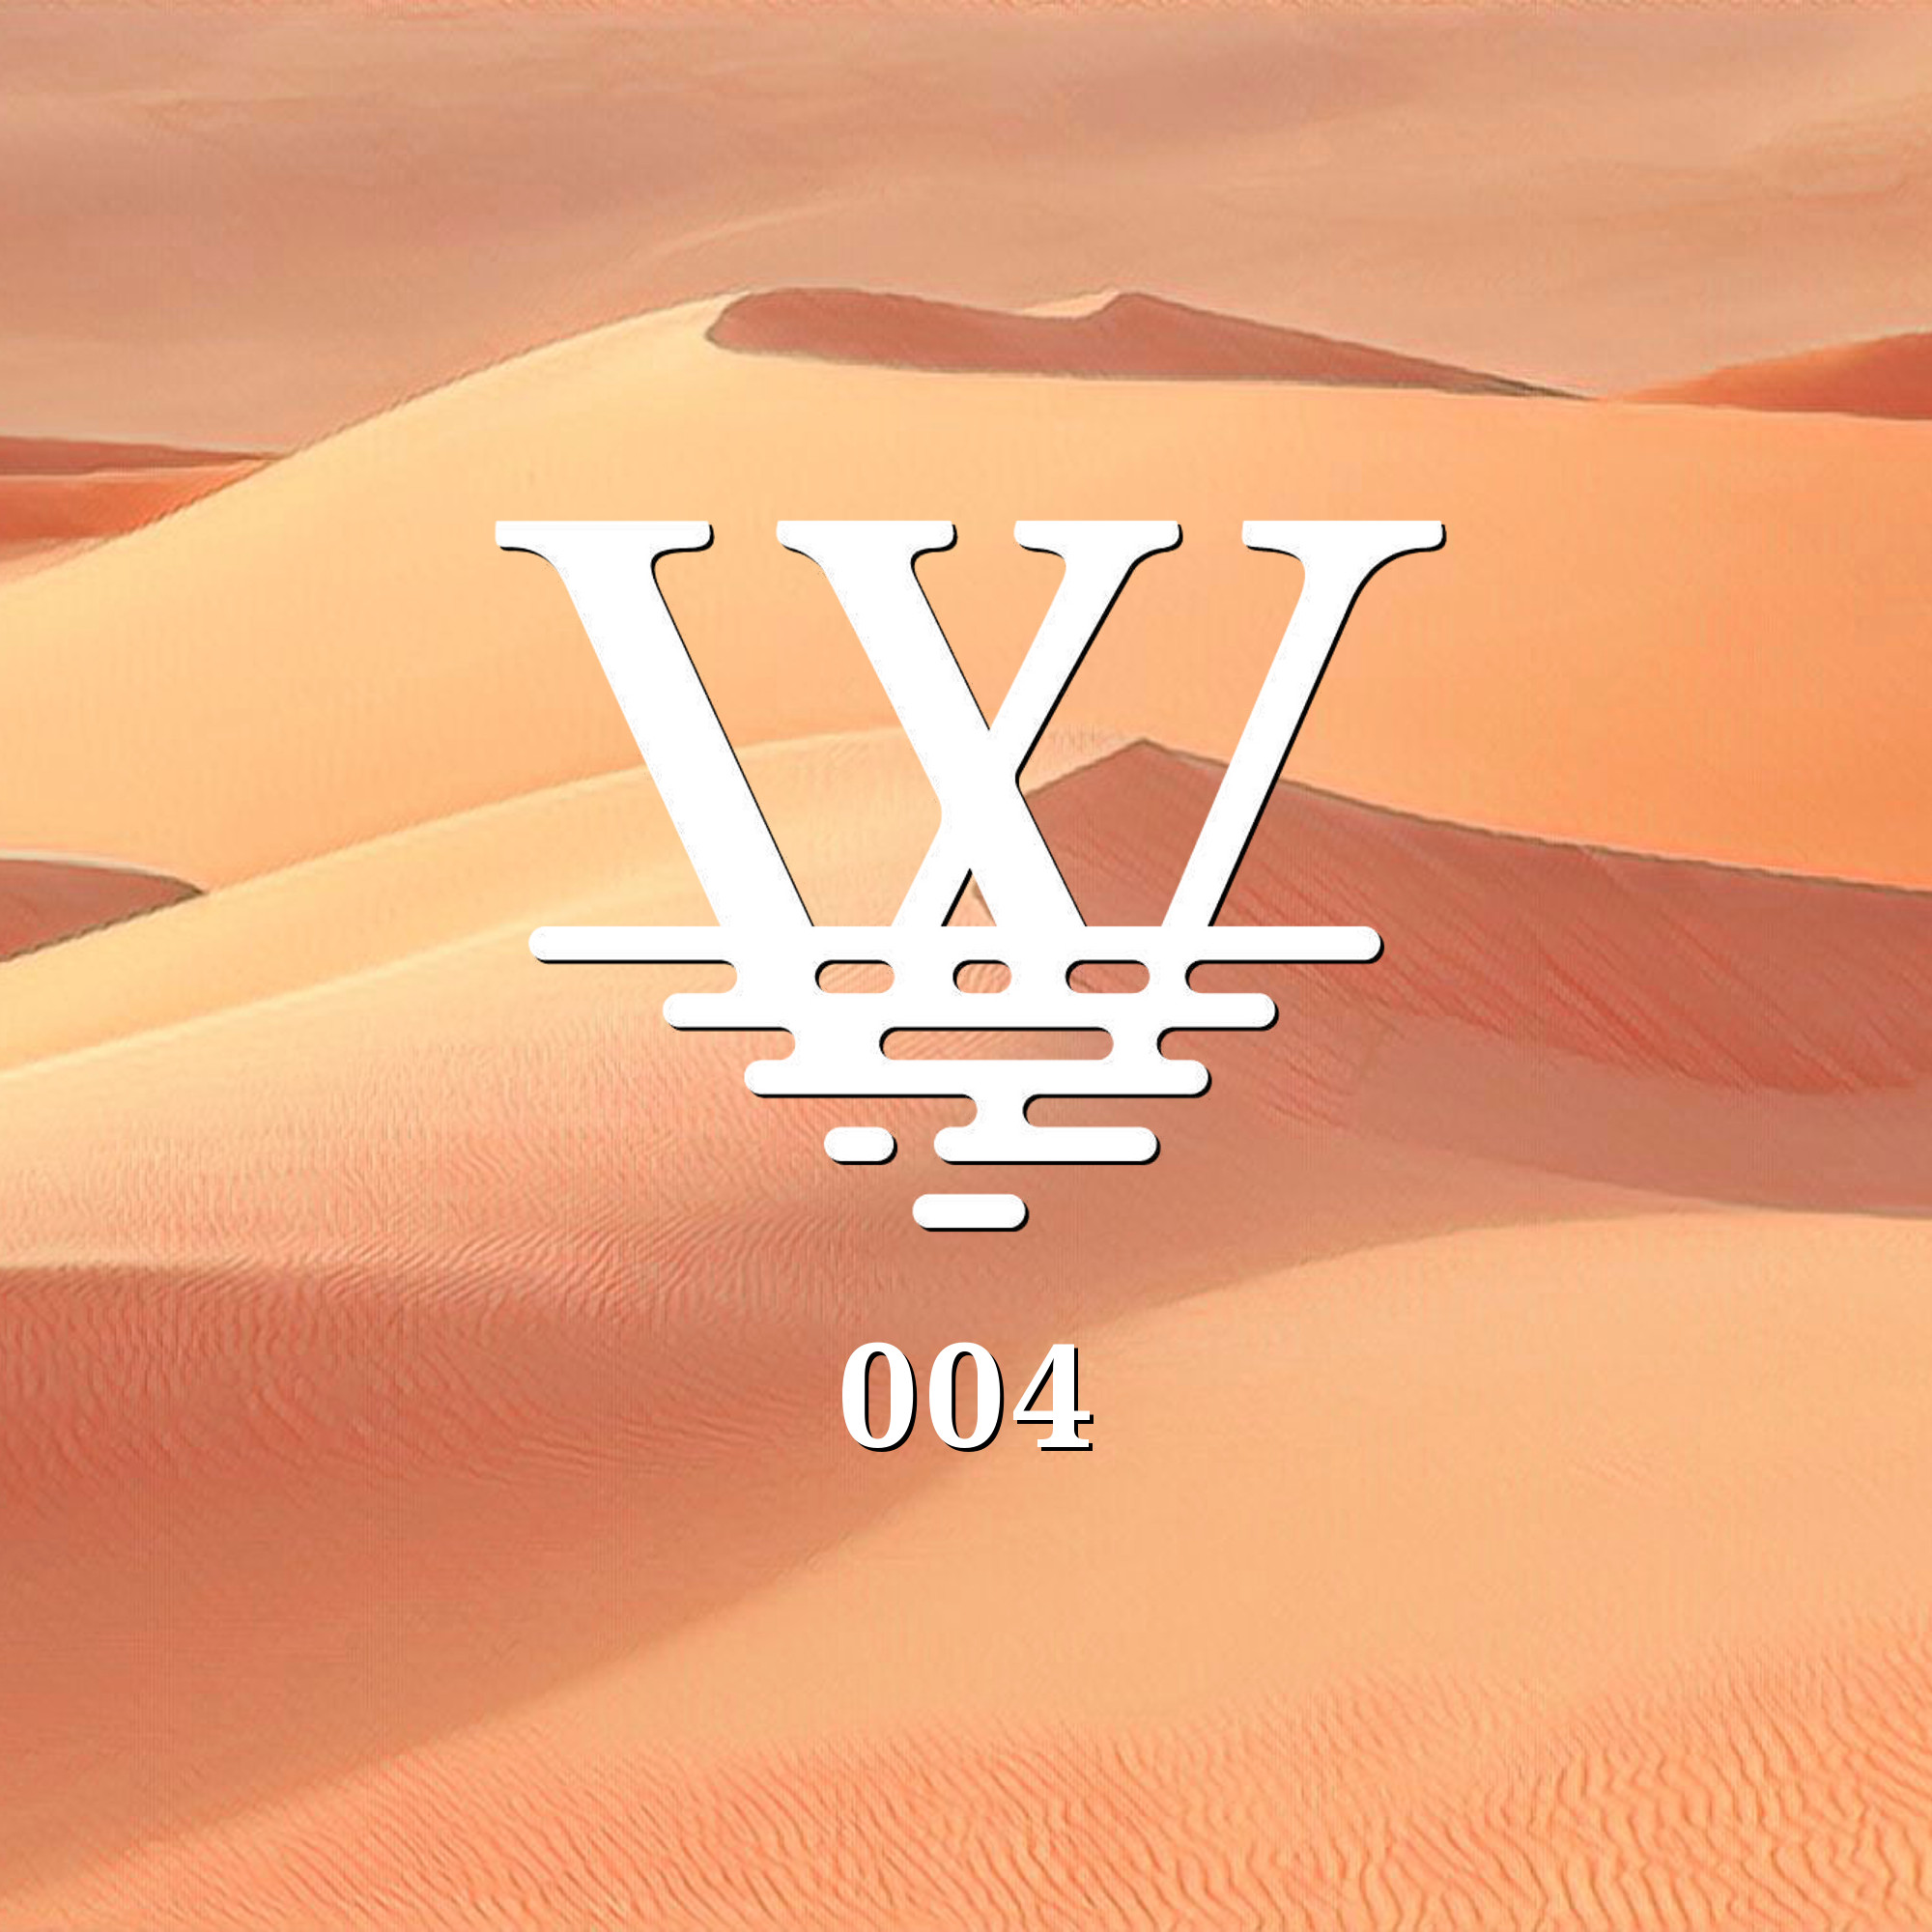 Wikisurfer 004 - Mummified Sound